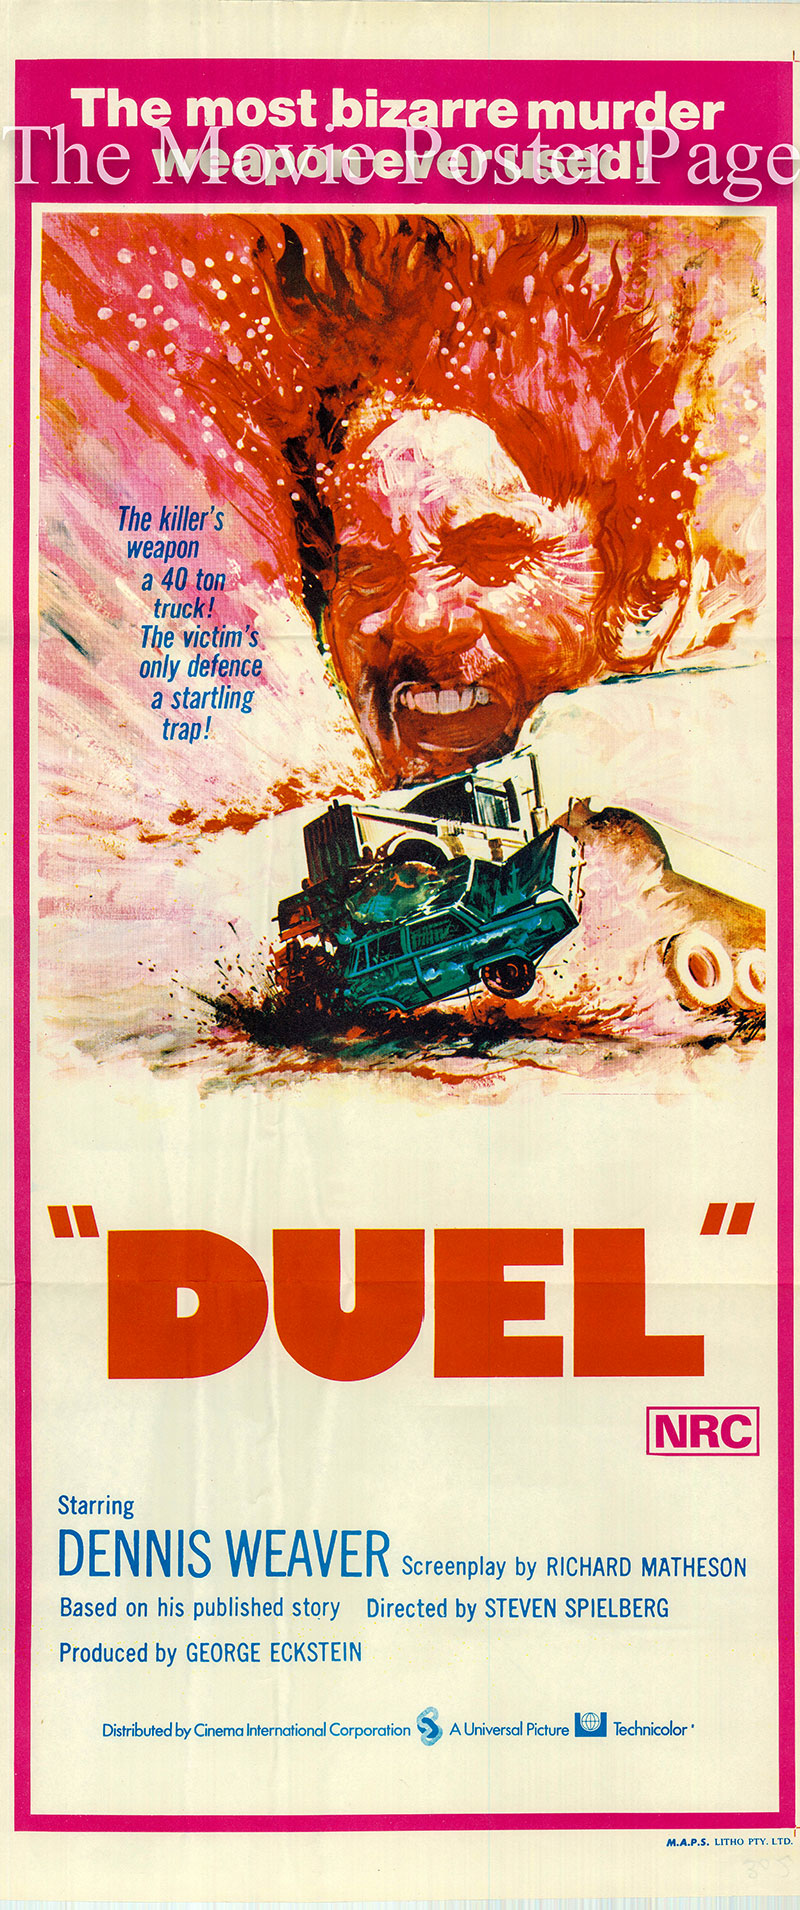 Pictured is an Australian daybill for the 1972 Steven Spielberg film Duel starring Dennis Weaver as David Mann.